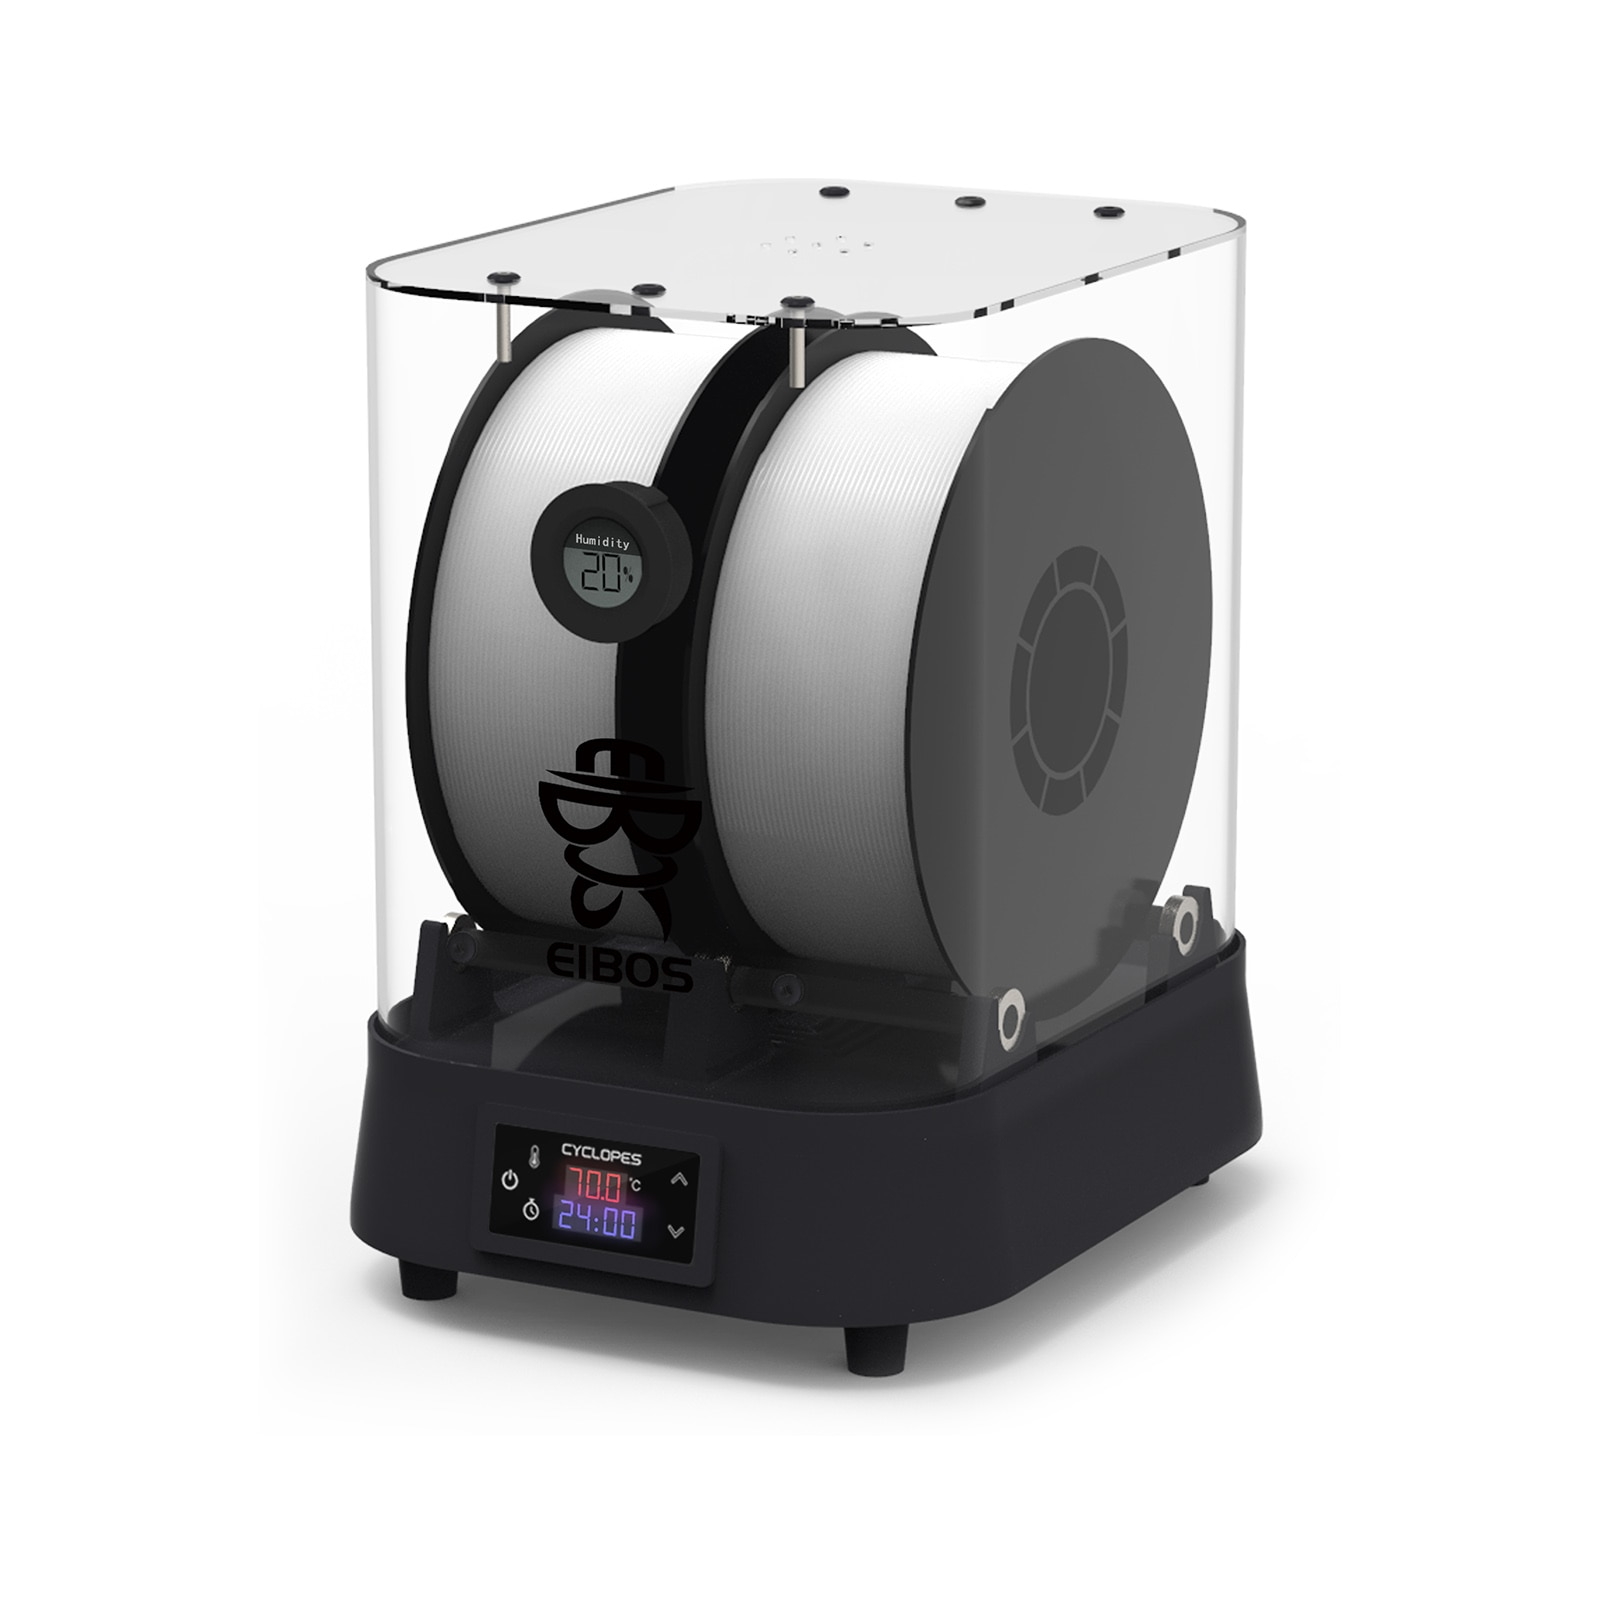 EIBOS Extra Large Dry Box, Filament Dryer, Compatible with 1.75mm, 2.85mm, 3.00mm 3D Filament: DRY FAST, HIGH TEMPERATURE enlarge